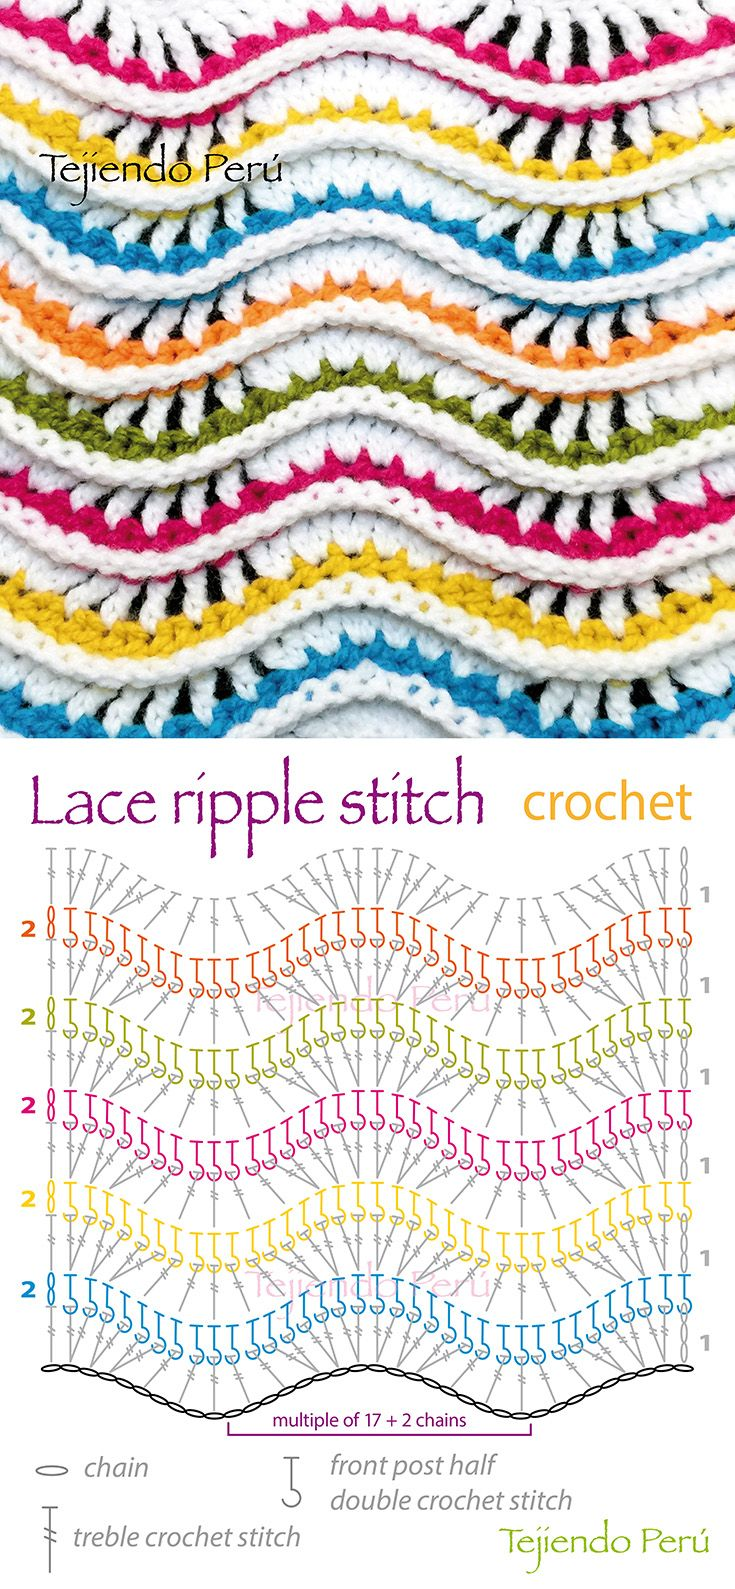 Crochet: lace ripple stitch diagram (pattern or chart)! Easy to read ...